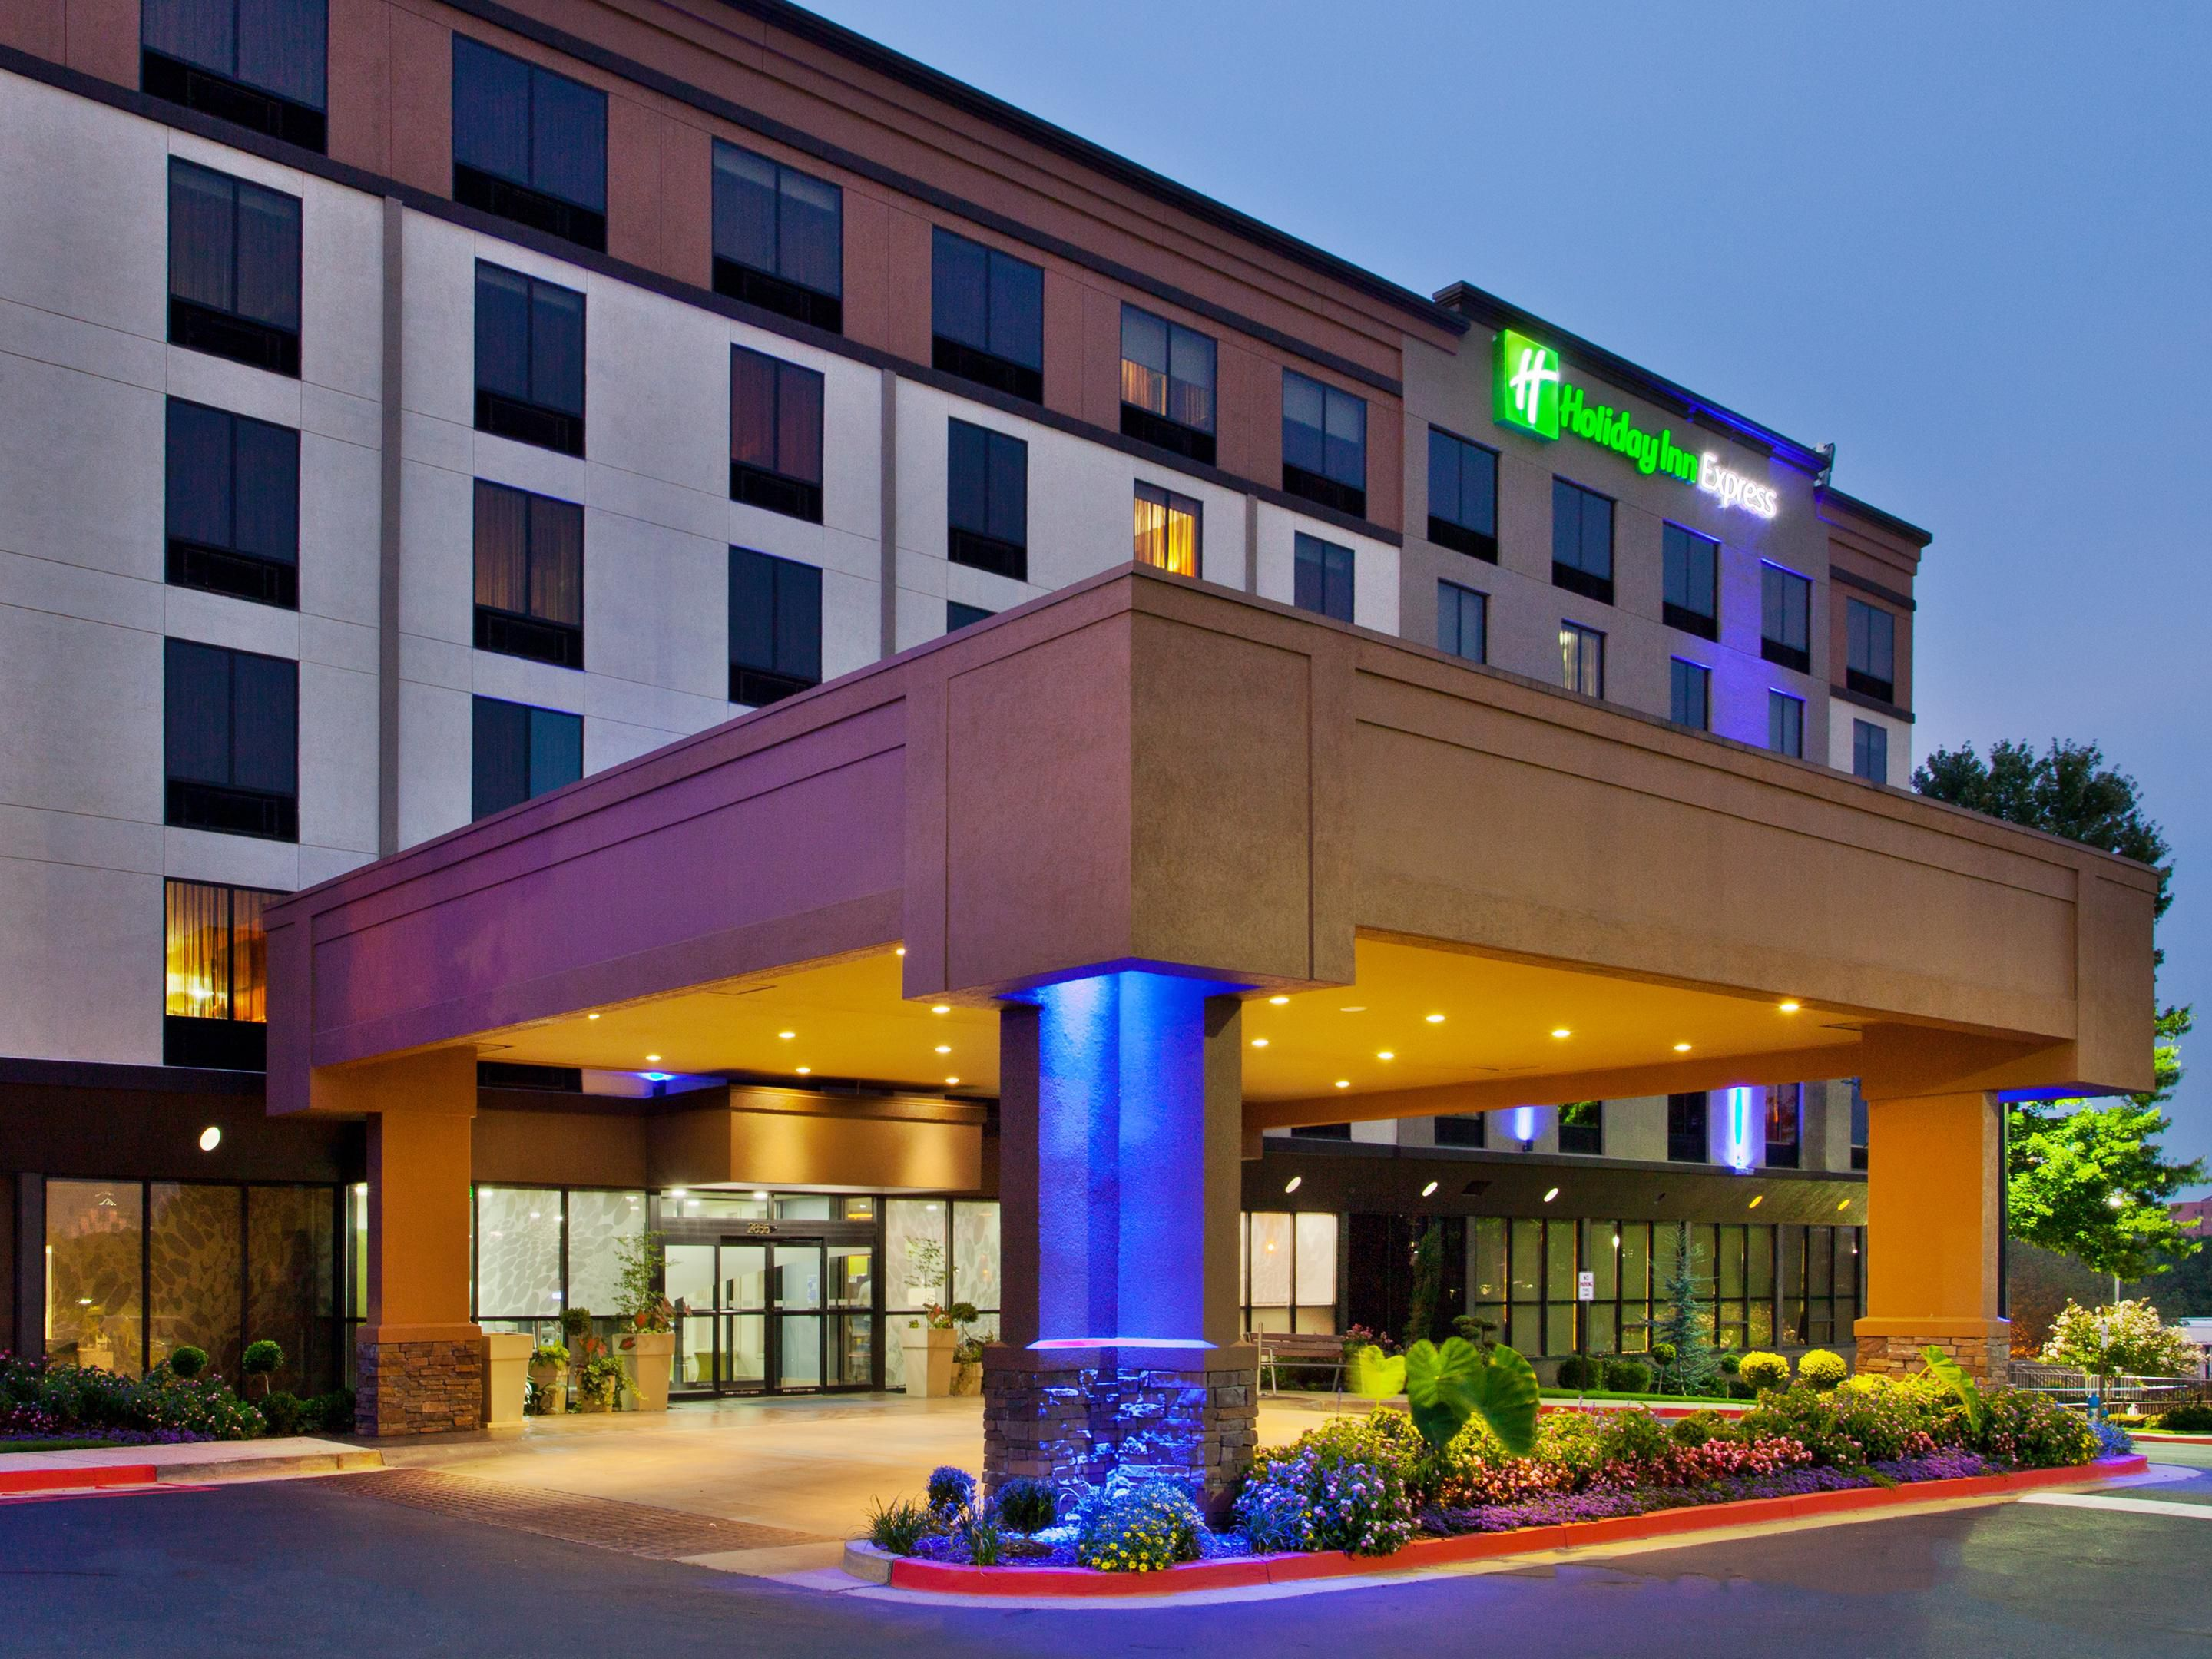 Find Quality Inn hotels in Marietta, GA. With great amenities and our Best Internet Rate Guarantee, book your hotel in Marietta today.